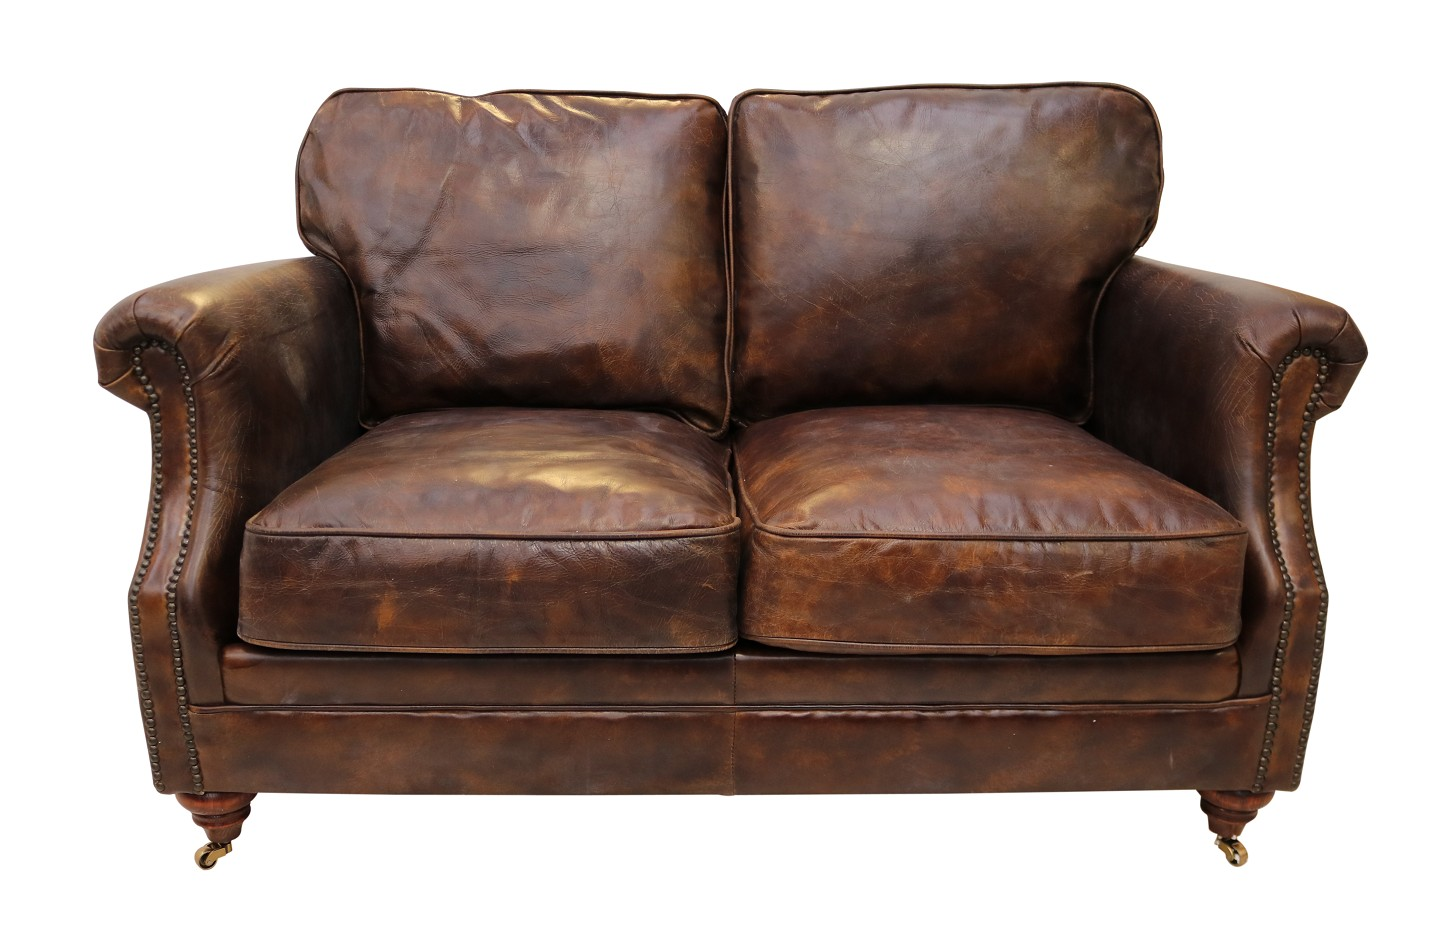 Luxury Vintage Distressed Leather 2 Seater Settee Sofa Tobacco Brown